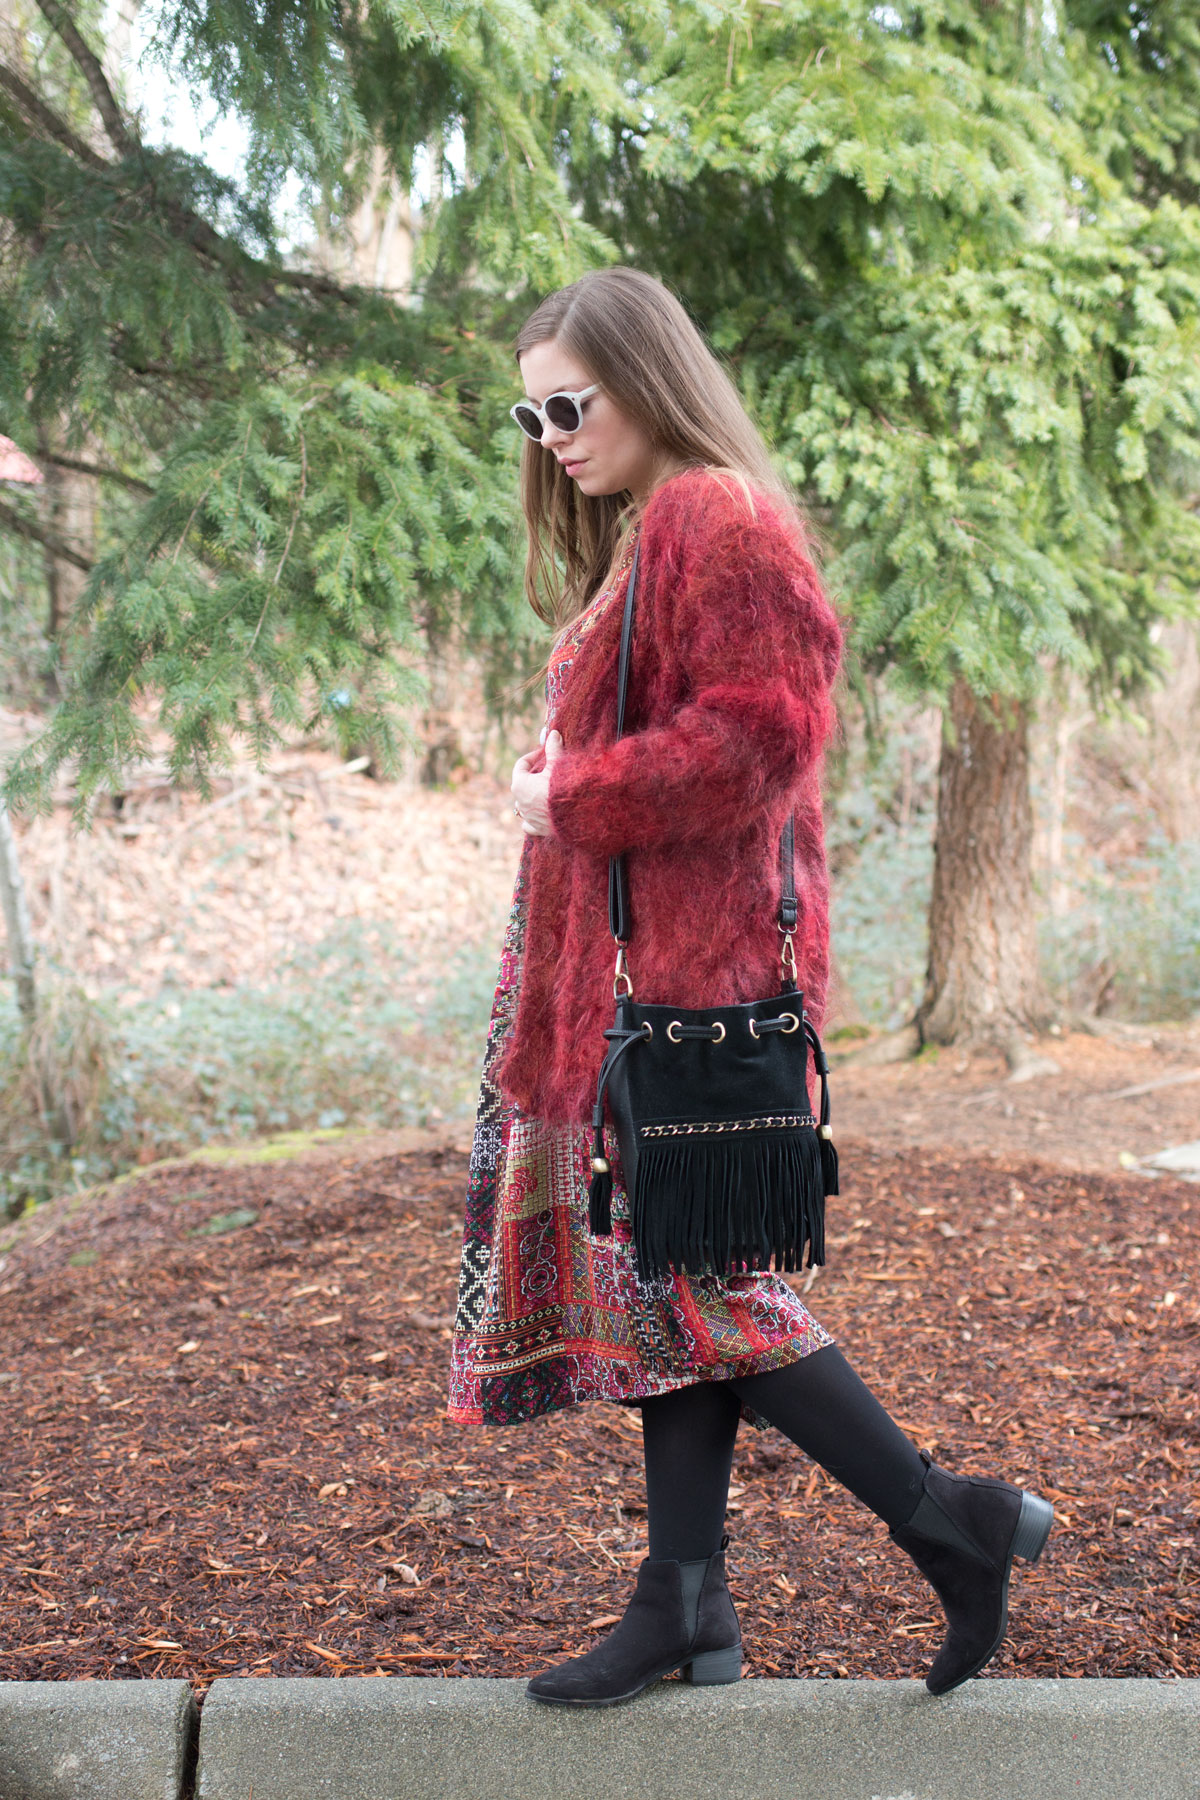 Zara Patchwork Midi Dress & Furry Coat Outfit // Winter Boho Outfit // Hello Rigby Seattle Fashion & Style Blog